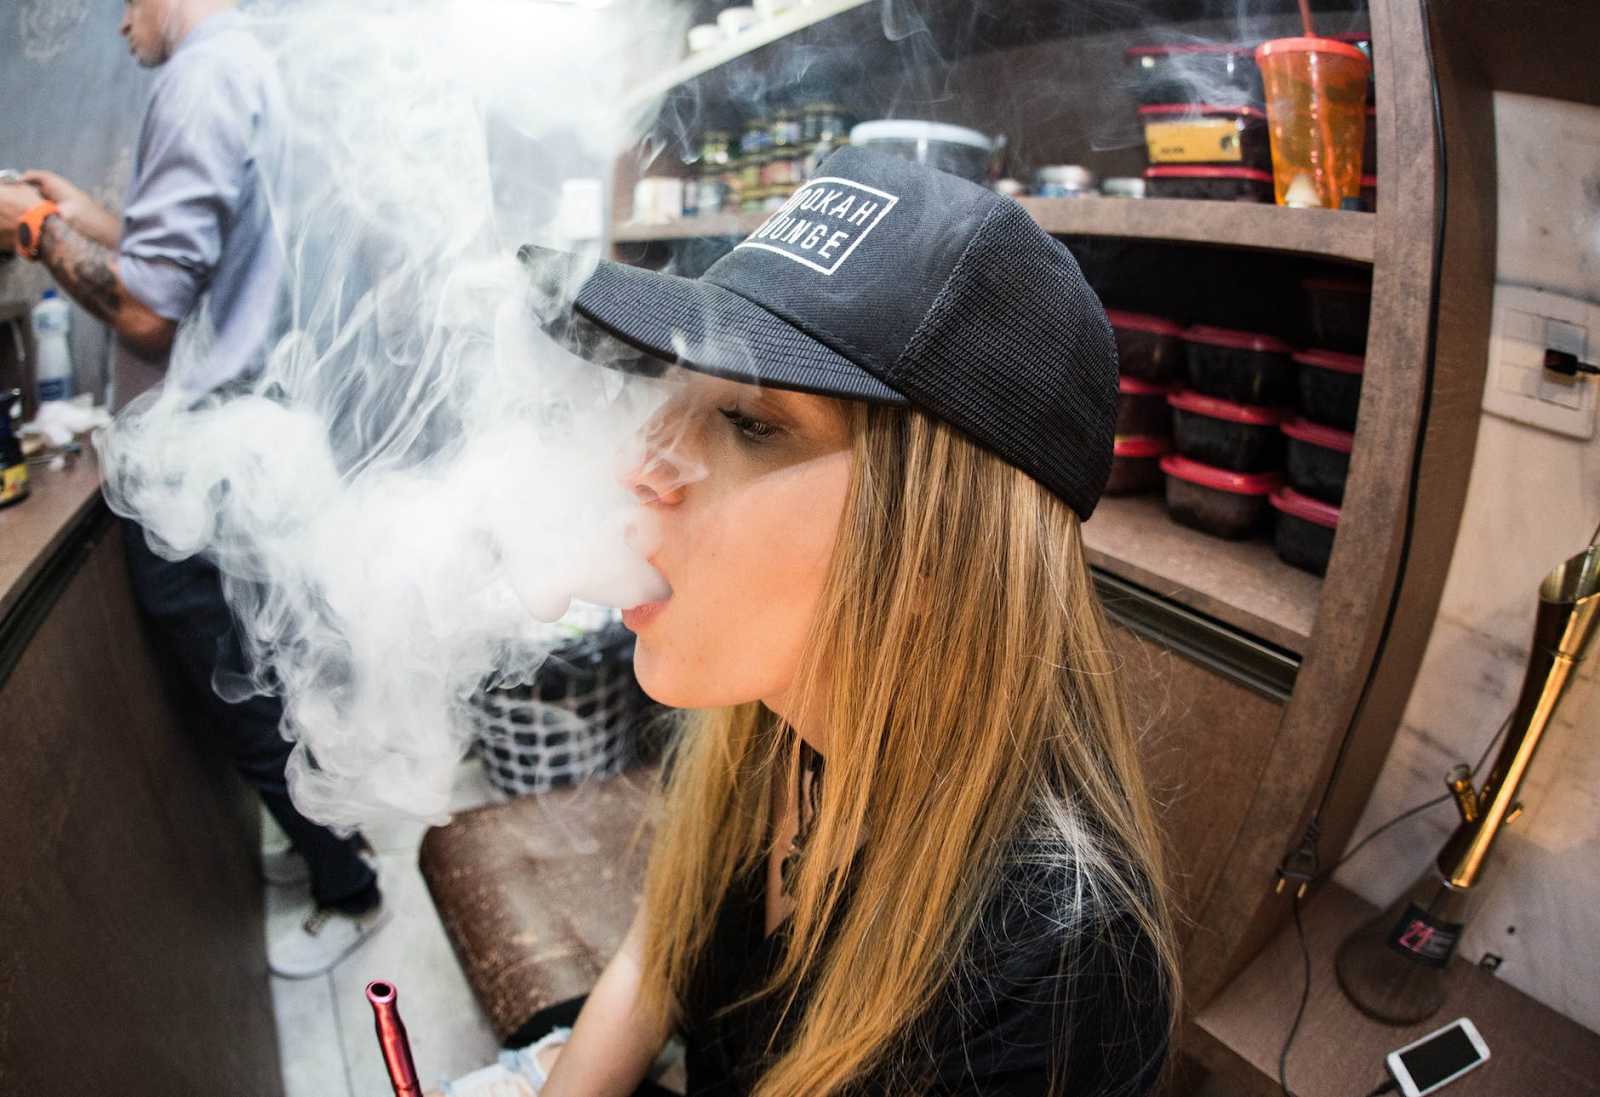 young person vaping